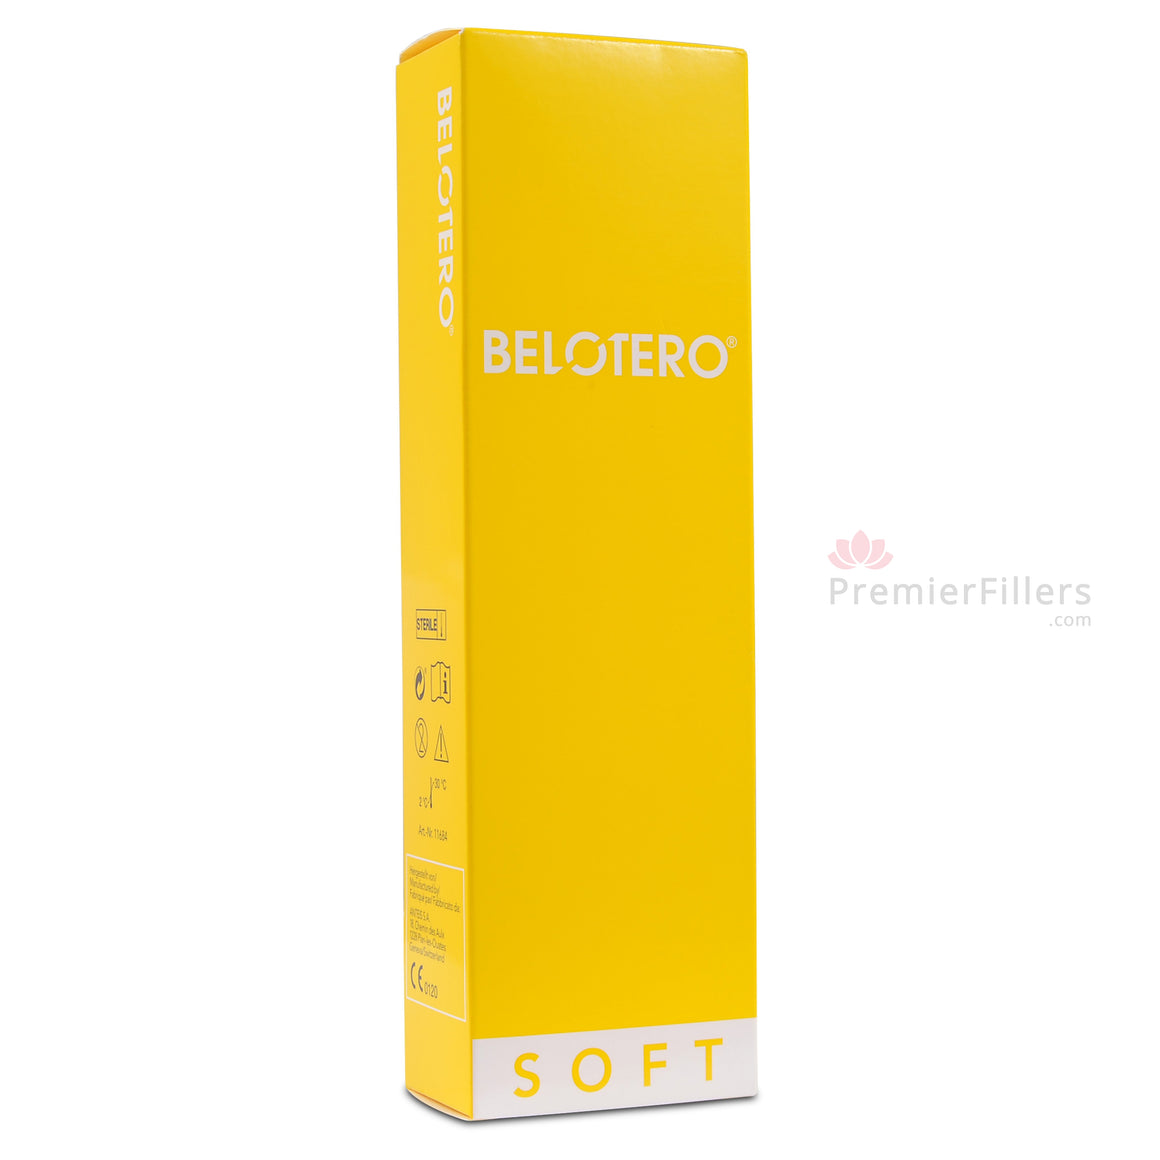 Belotero Soft (1x1ml)